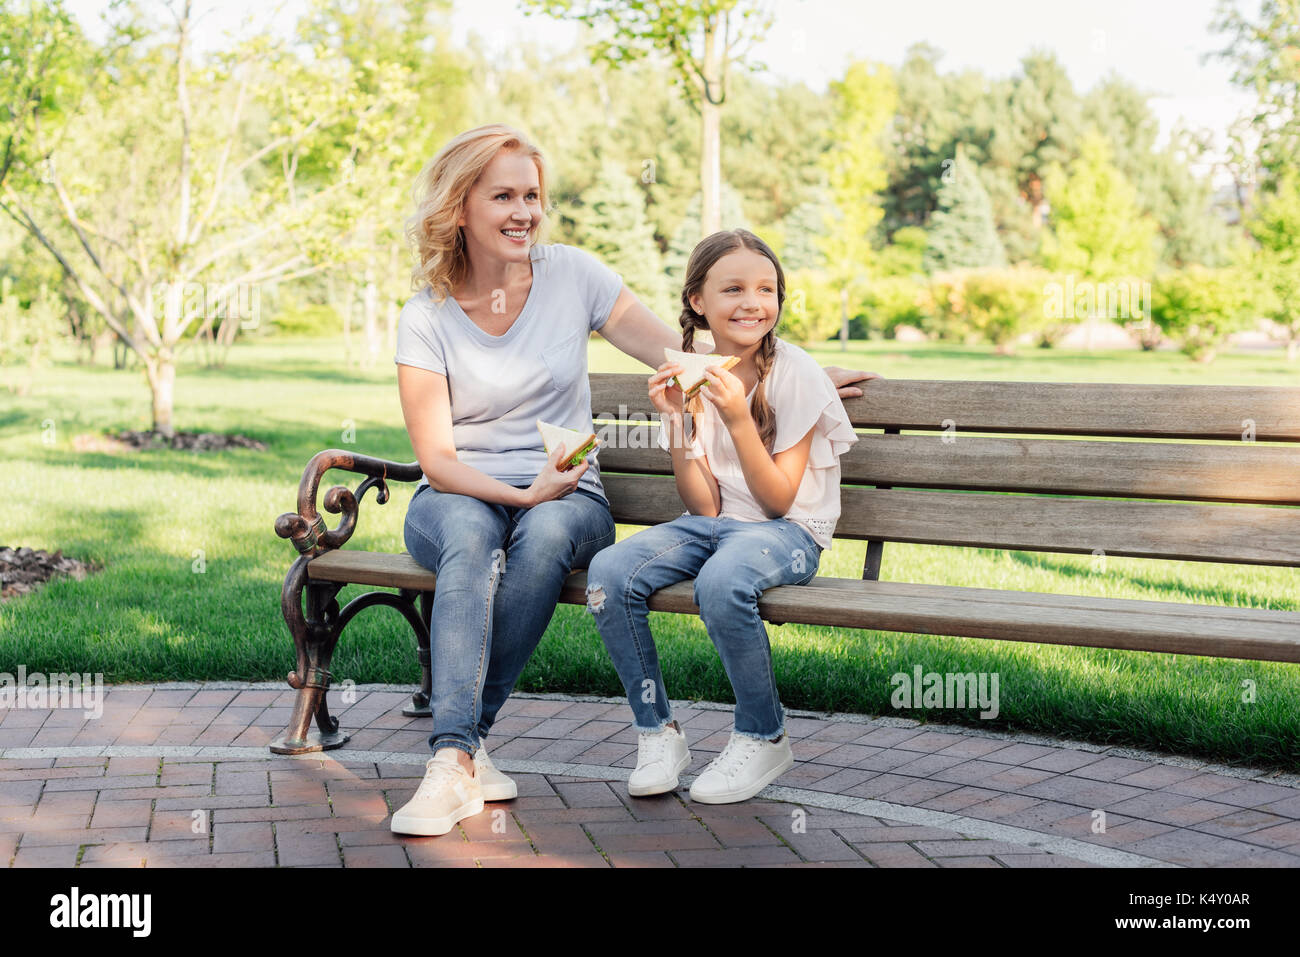 woman and granddaughter eating sandwiches - Stock Image